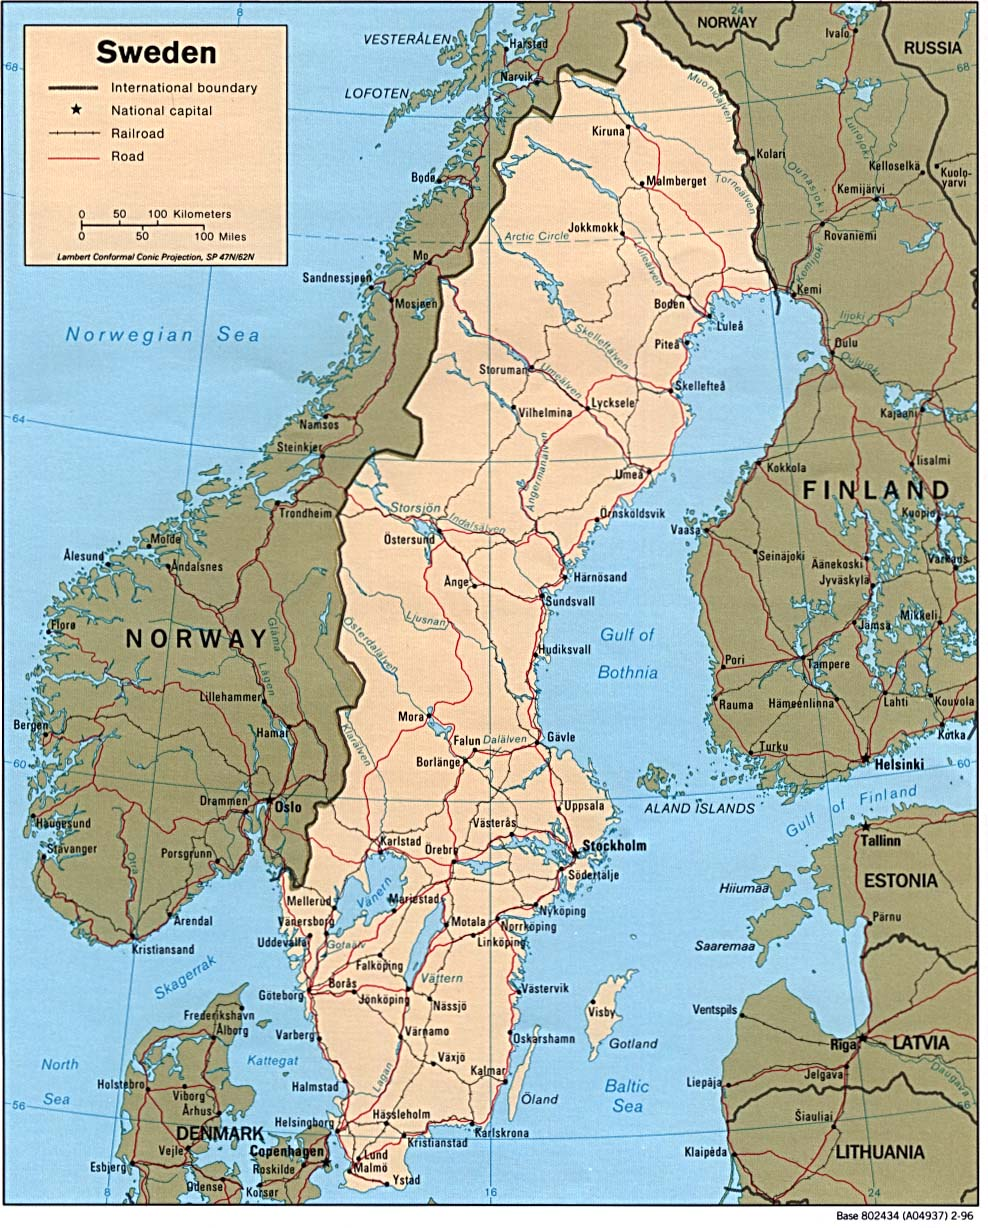 Map Of Sweden Pictures to pin on Pinterest: http://pinstake.com/map-of-sweden